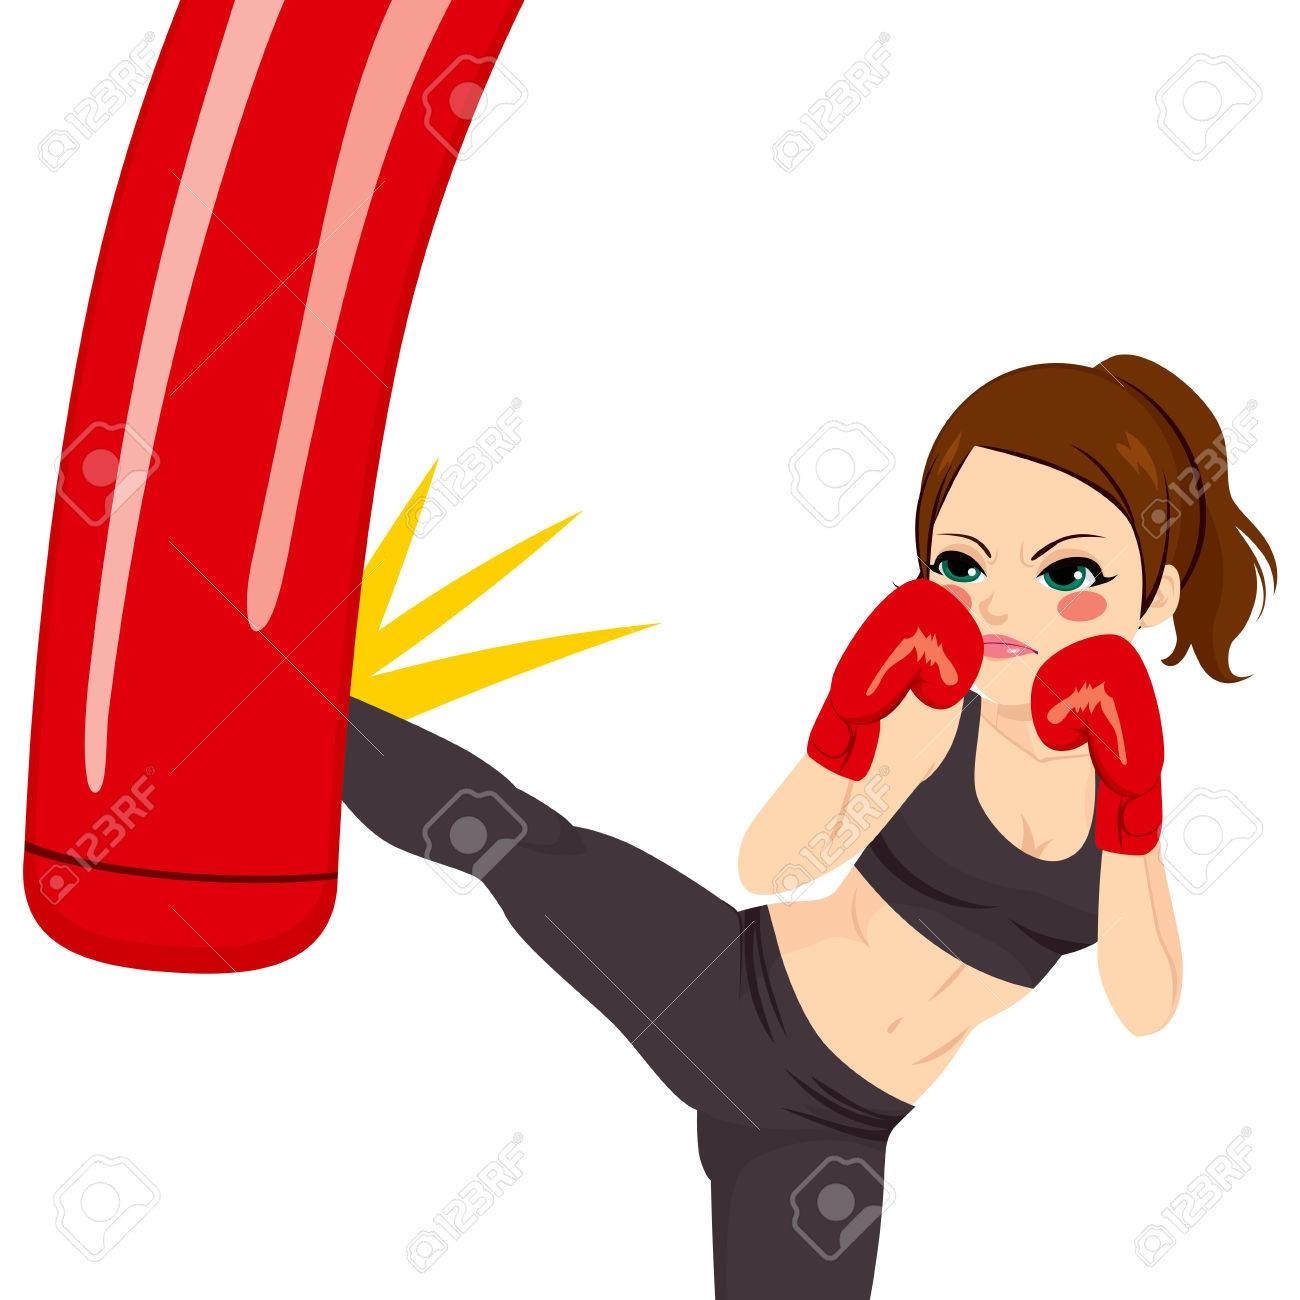 young strong woman kicking red punching bag with powerful leg rh 123rf com Fight Cancer Clip Art Boxing Glove Template